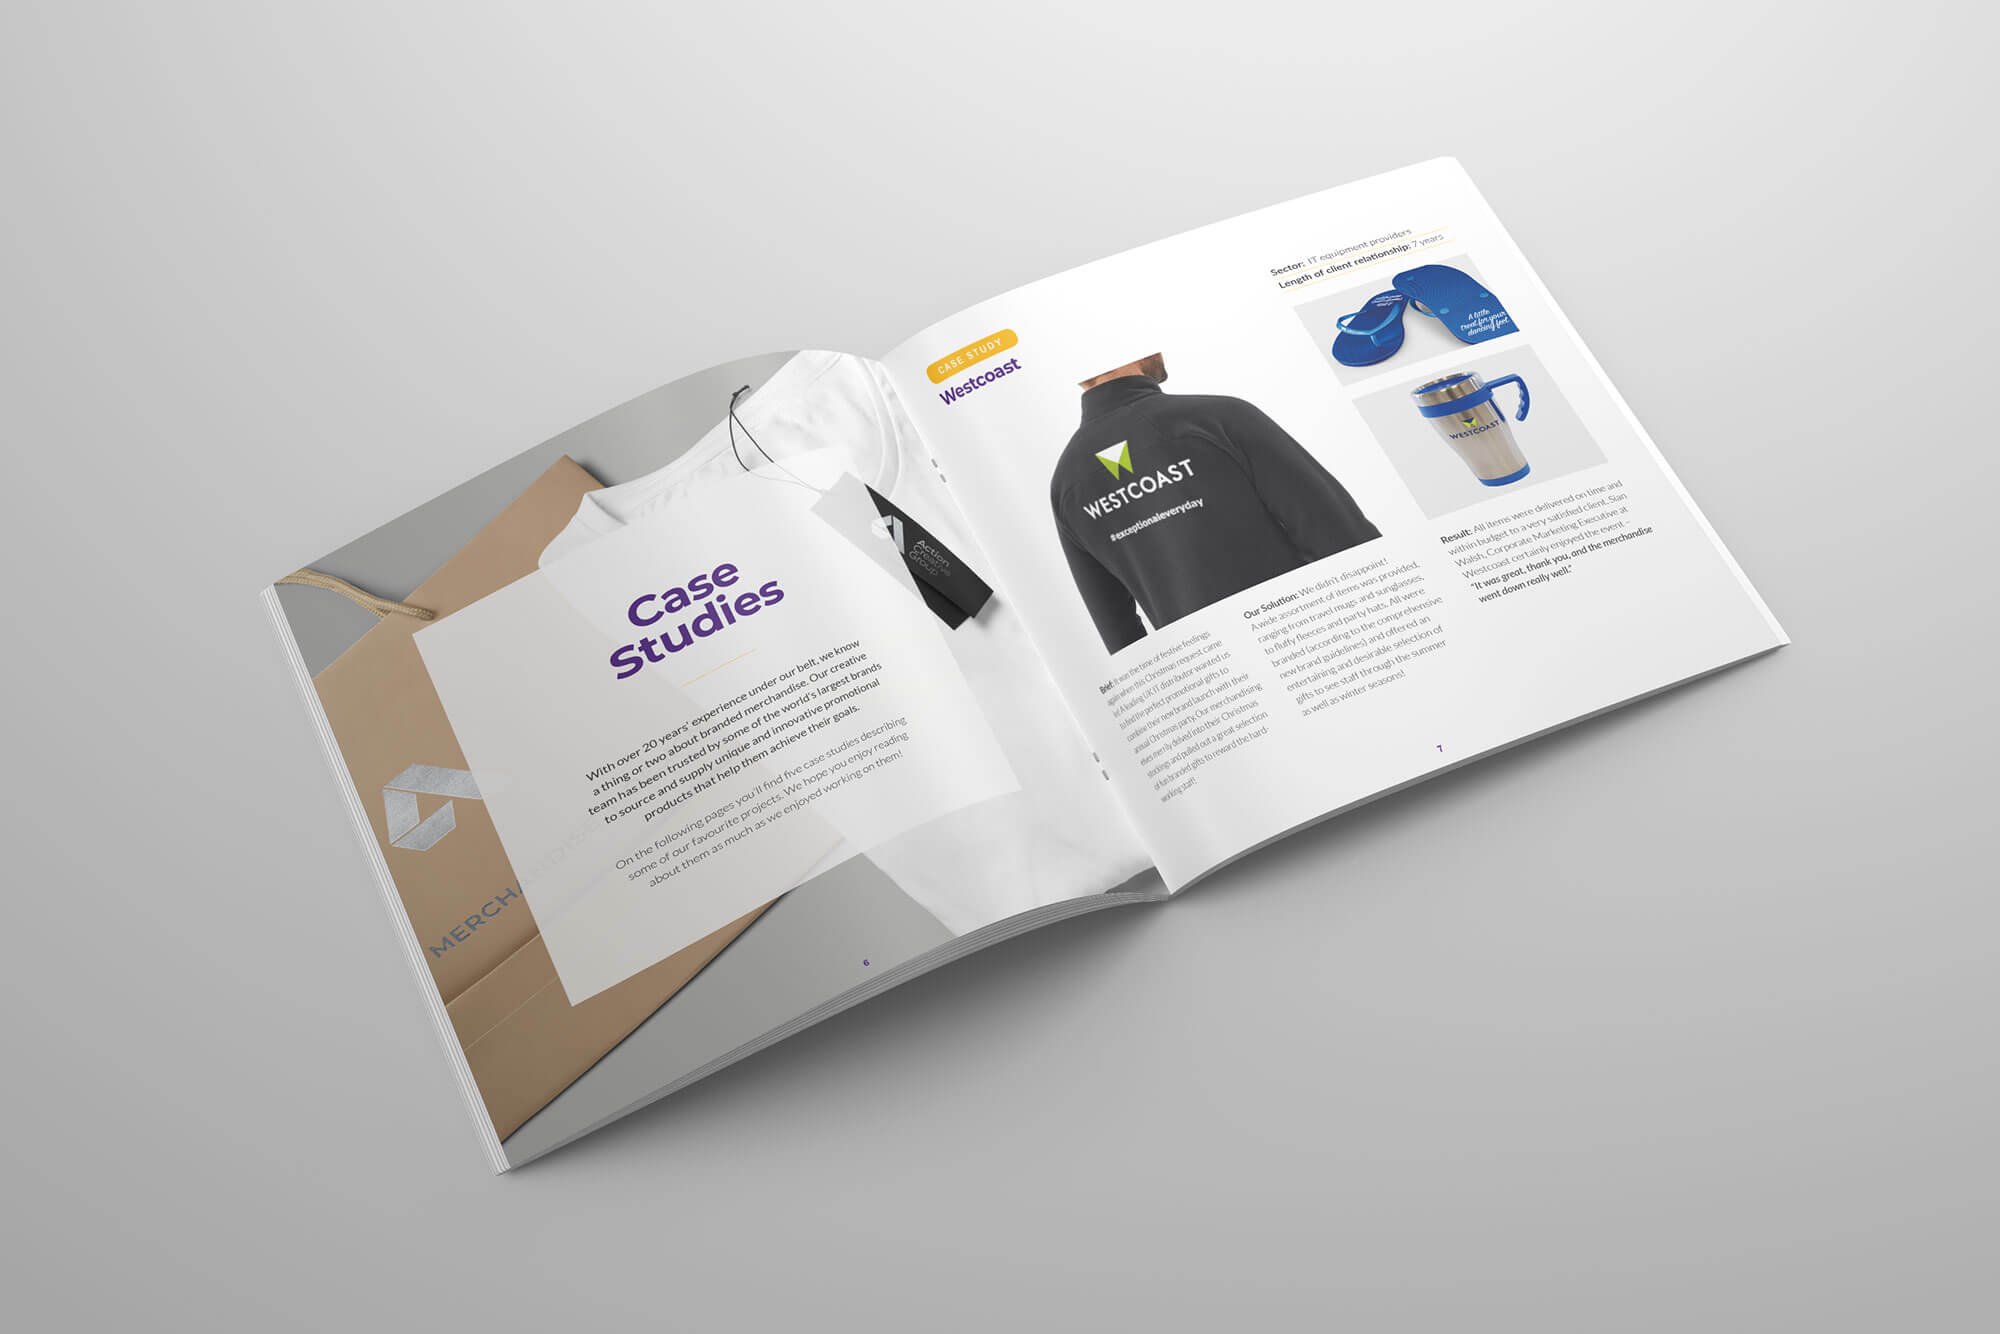 Action Promote Overview Brochure Inside Spread